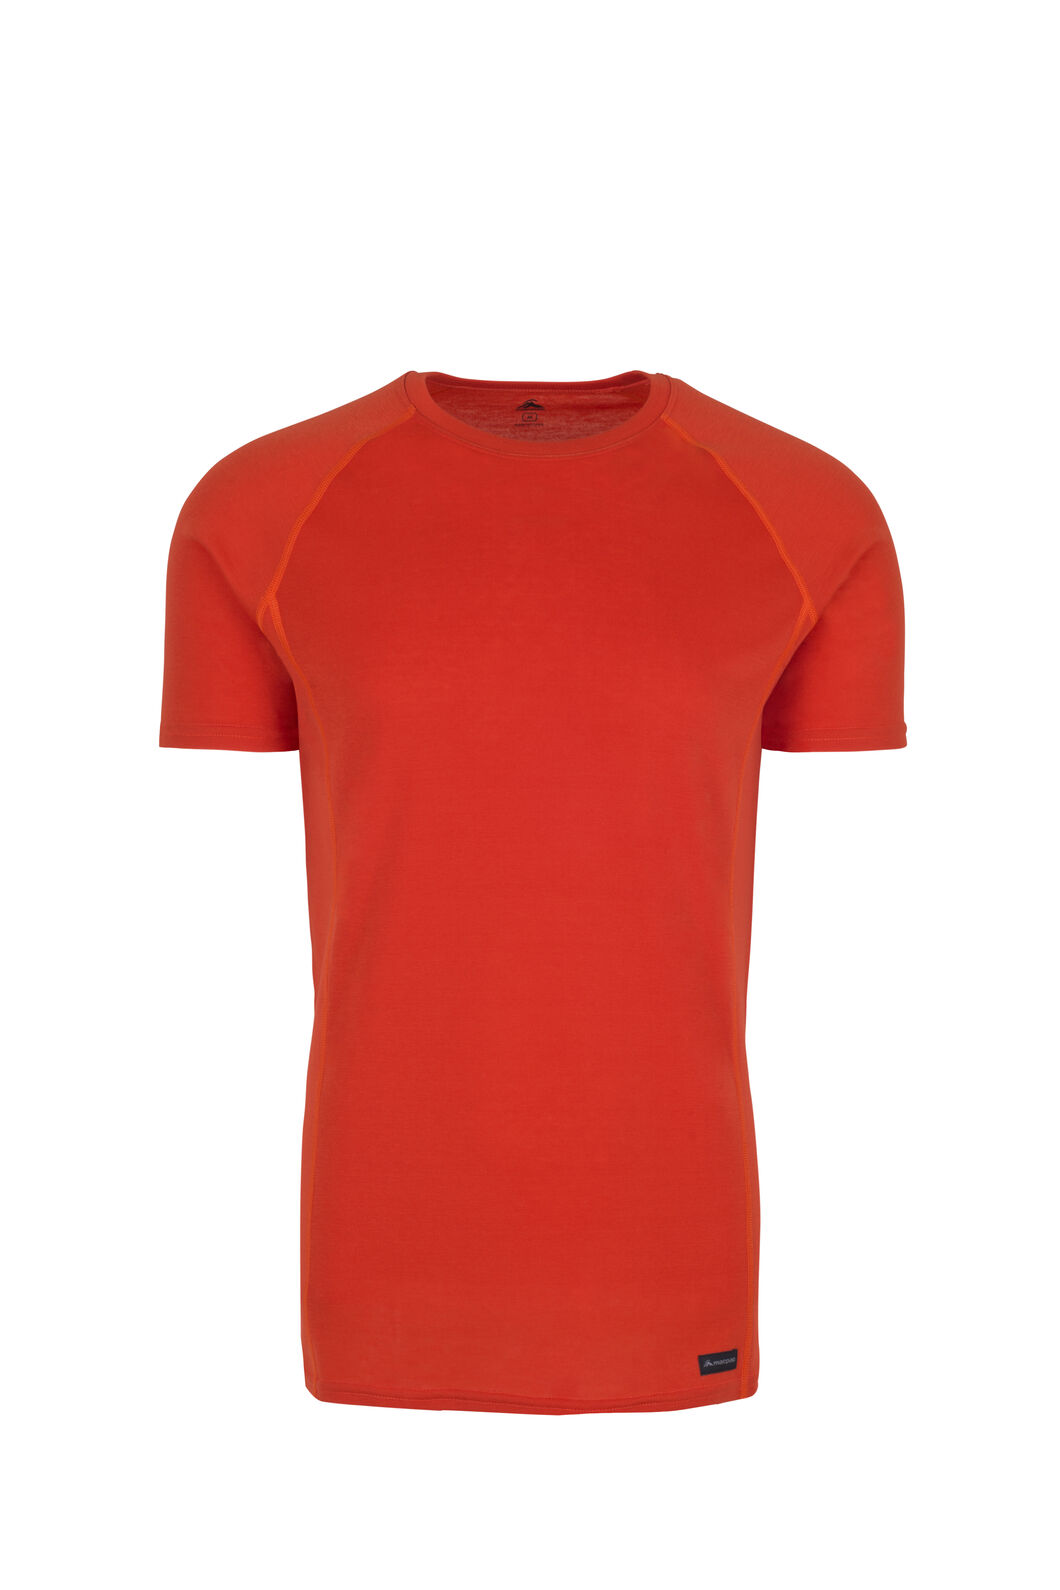 Macpac Geothermal Short Sleeve Top - Men's, Spicy Orange, hi-res